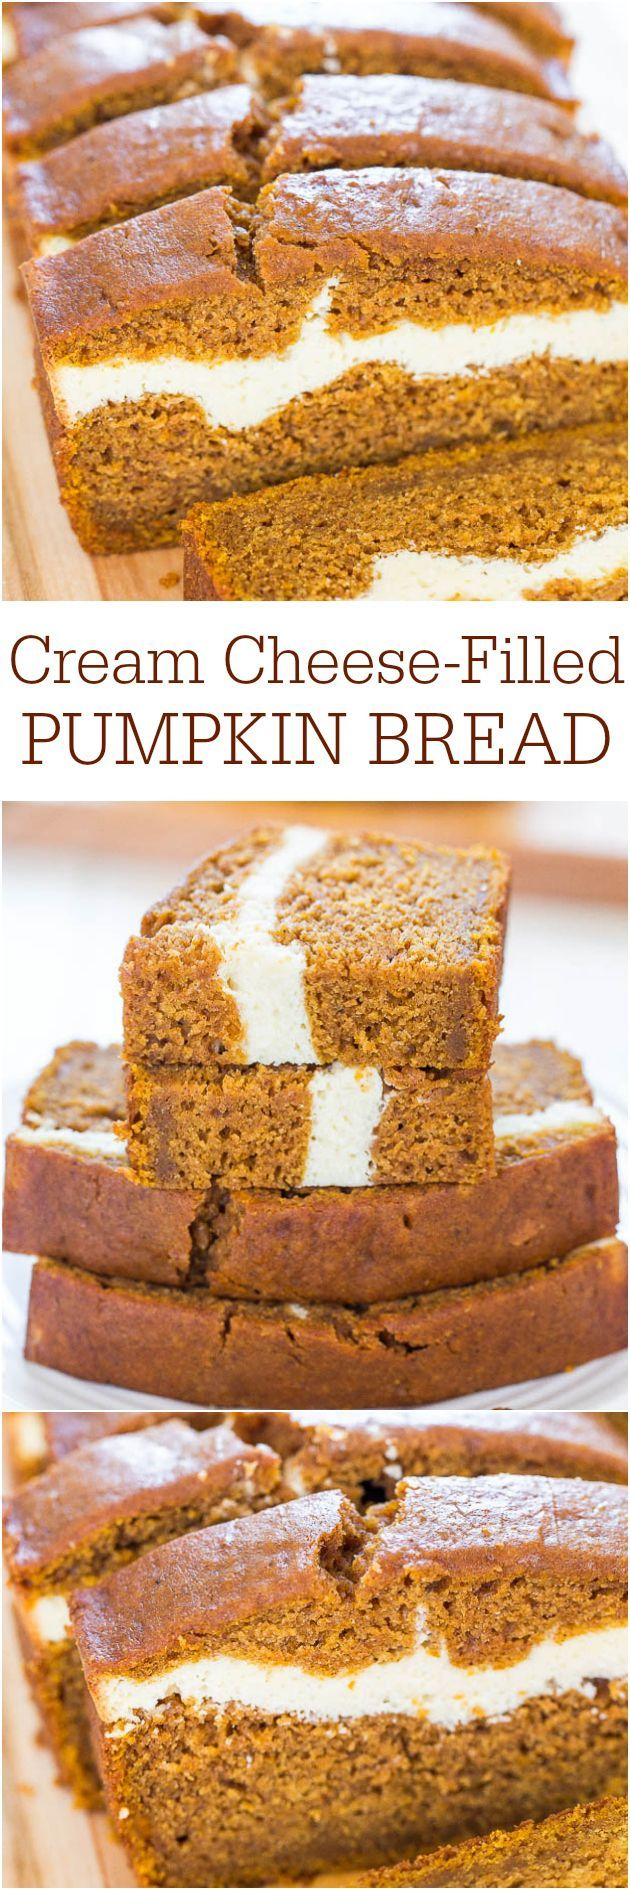 Cream Cheese-Filled Pumpkin Bread - Pumpkin bread thats like having cheesecake baked in! Soft, fluffy, easy and tastes ahhhh-mazing!